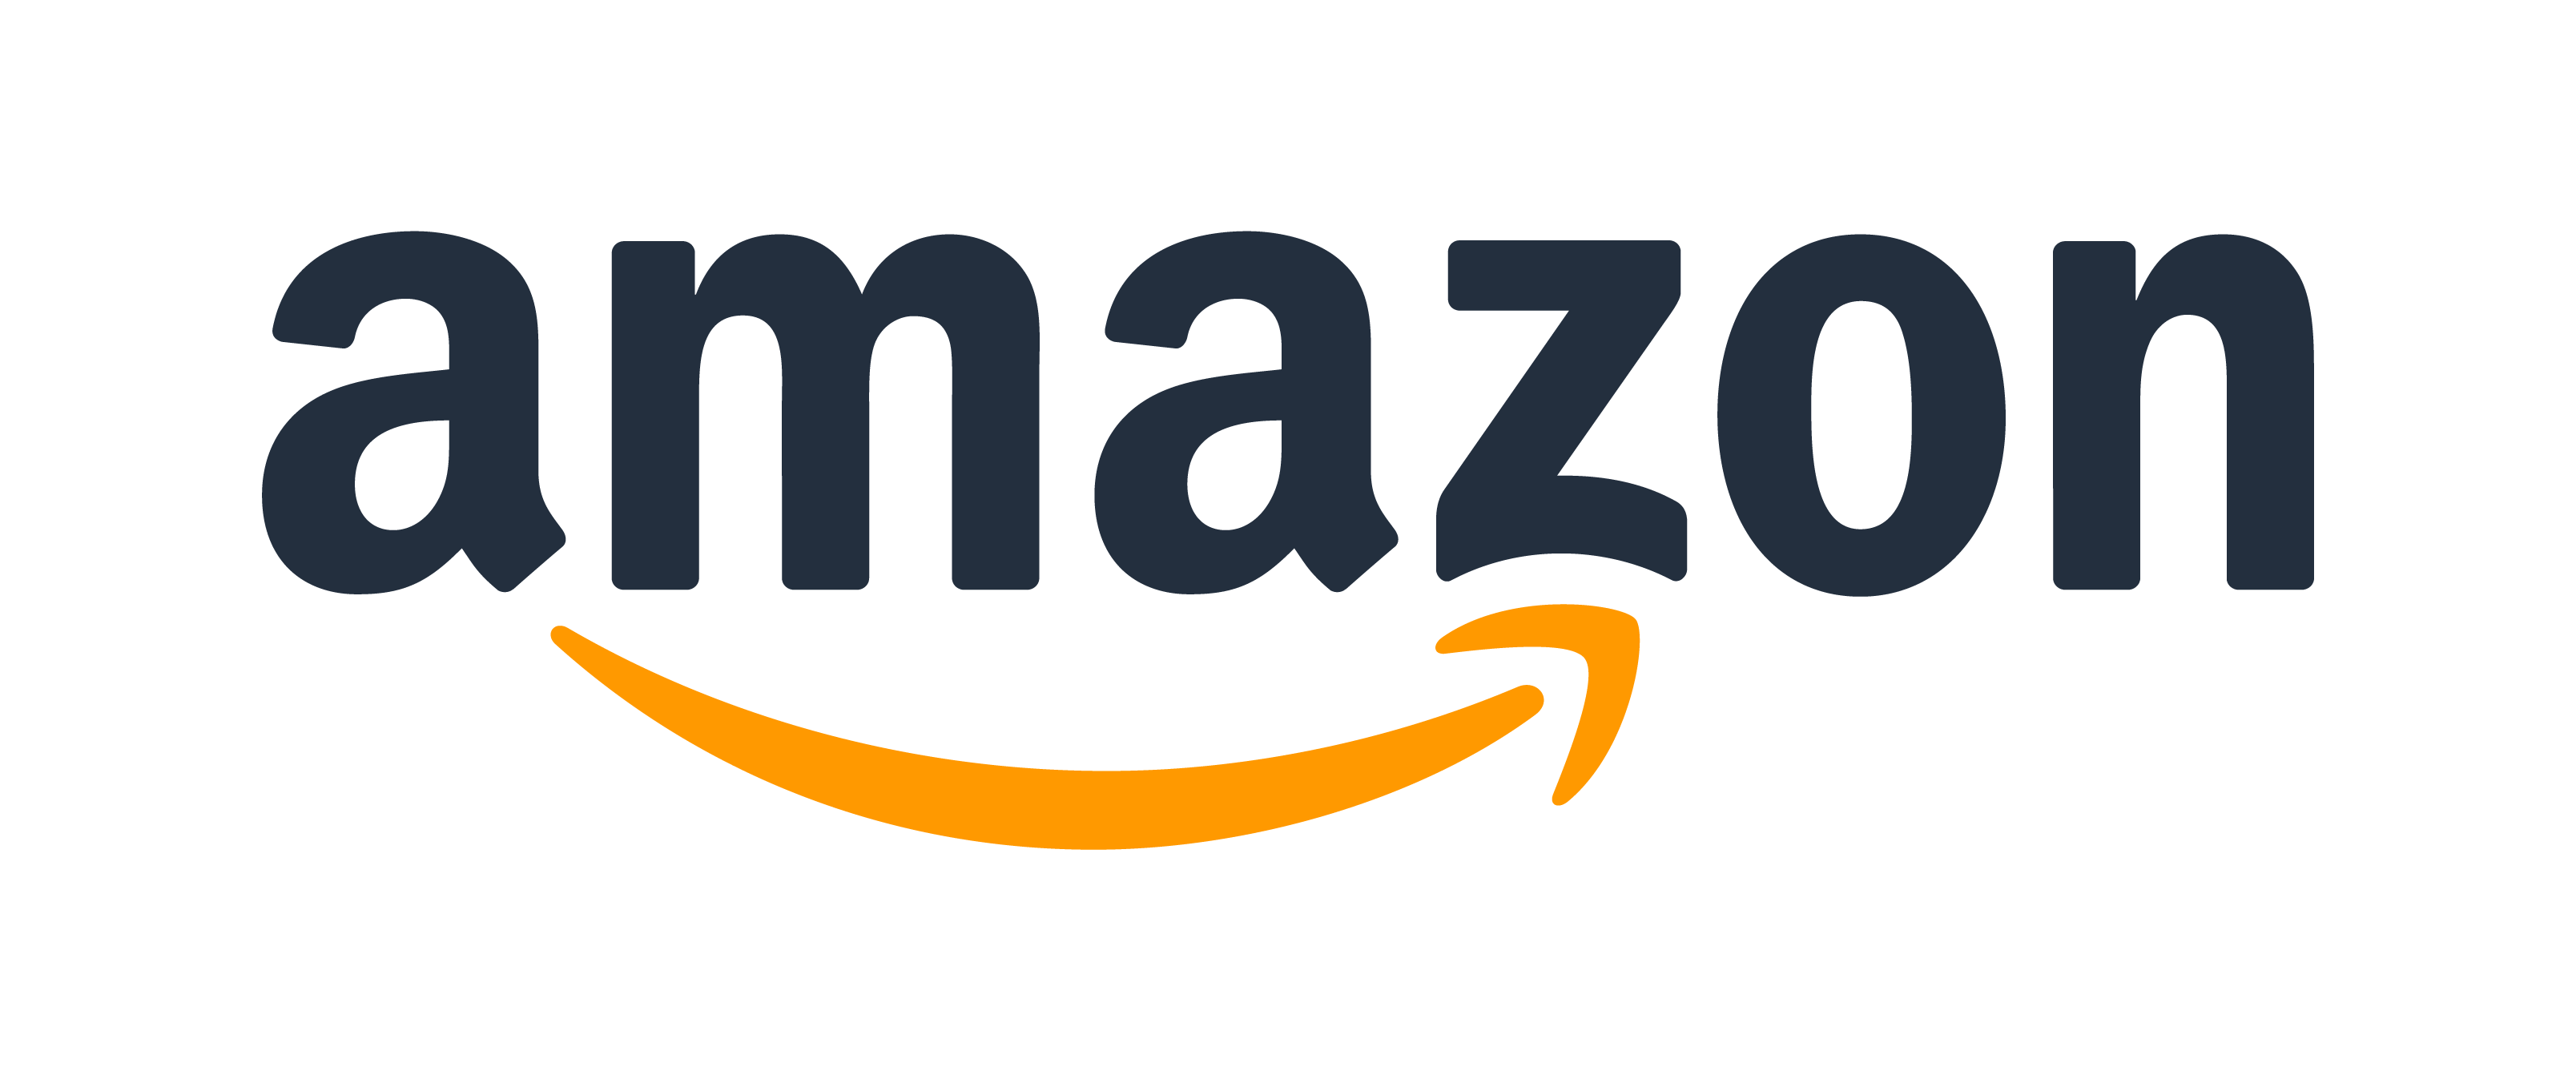 Images and videos | Amazon.com, Inc. - Press Room